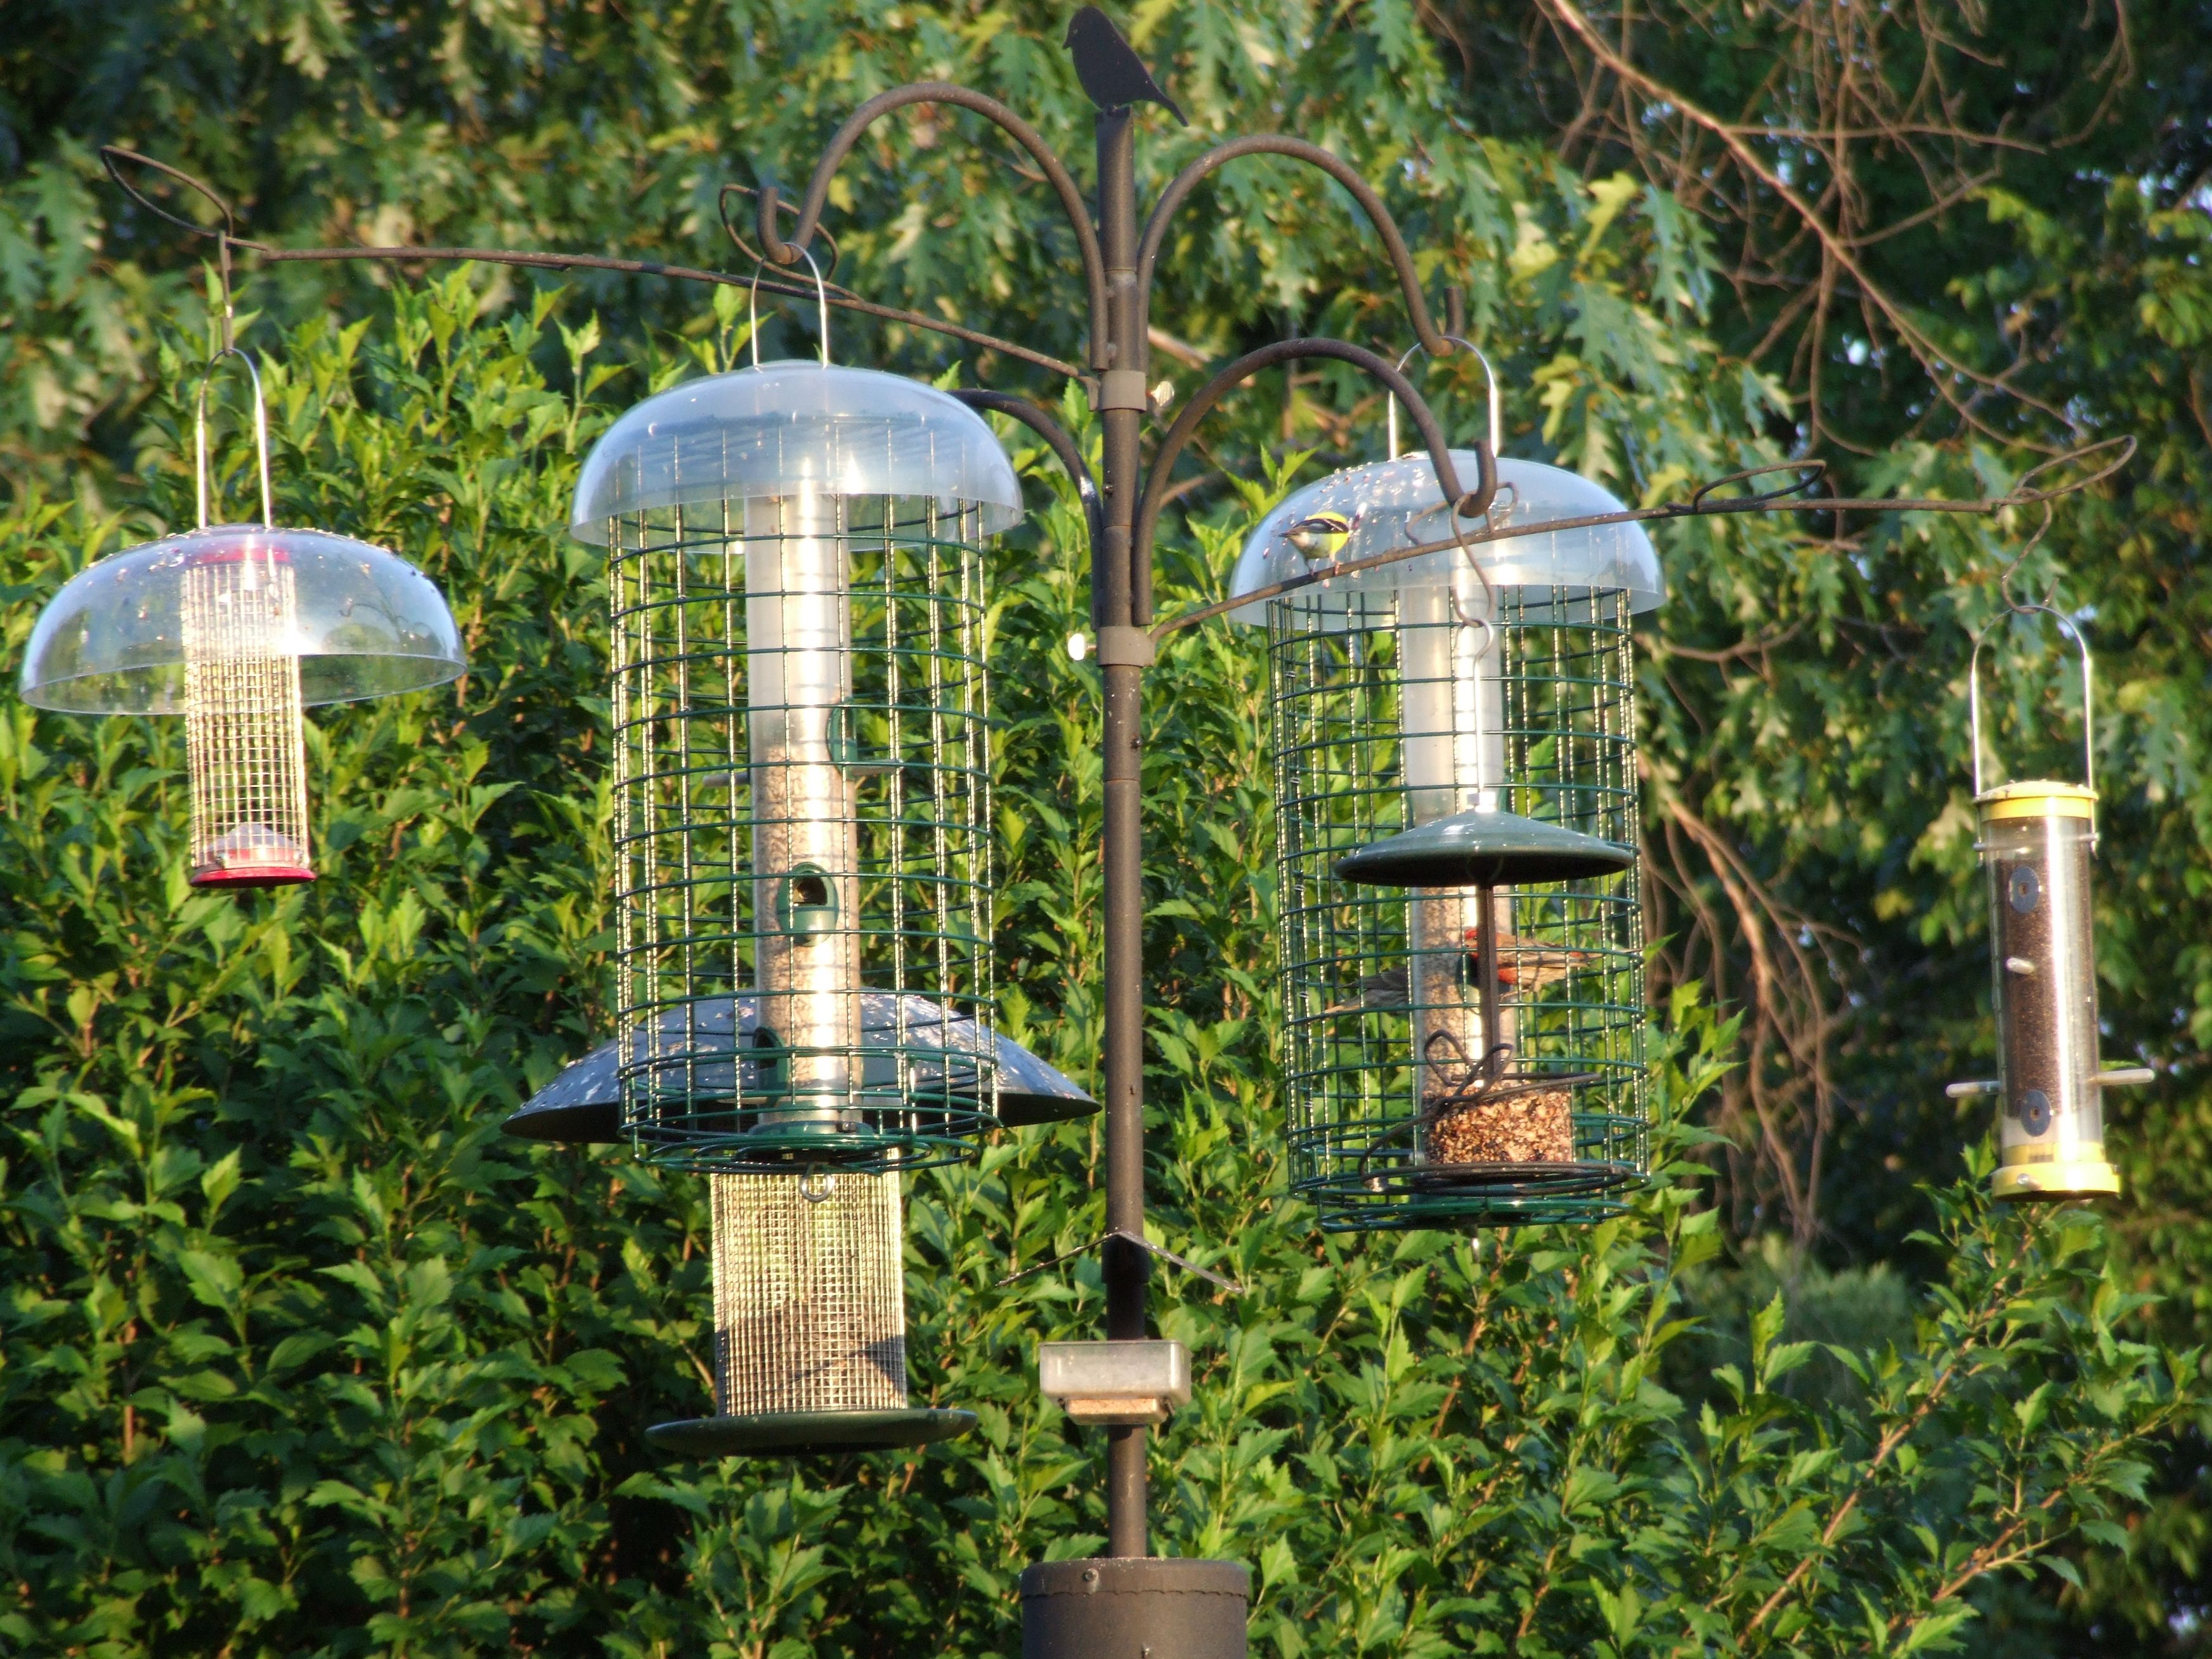 birds lowe bedroom yellow birdhouse plan unique unlimited houses h goldfinch feeder feeders for finch plans bird house